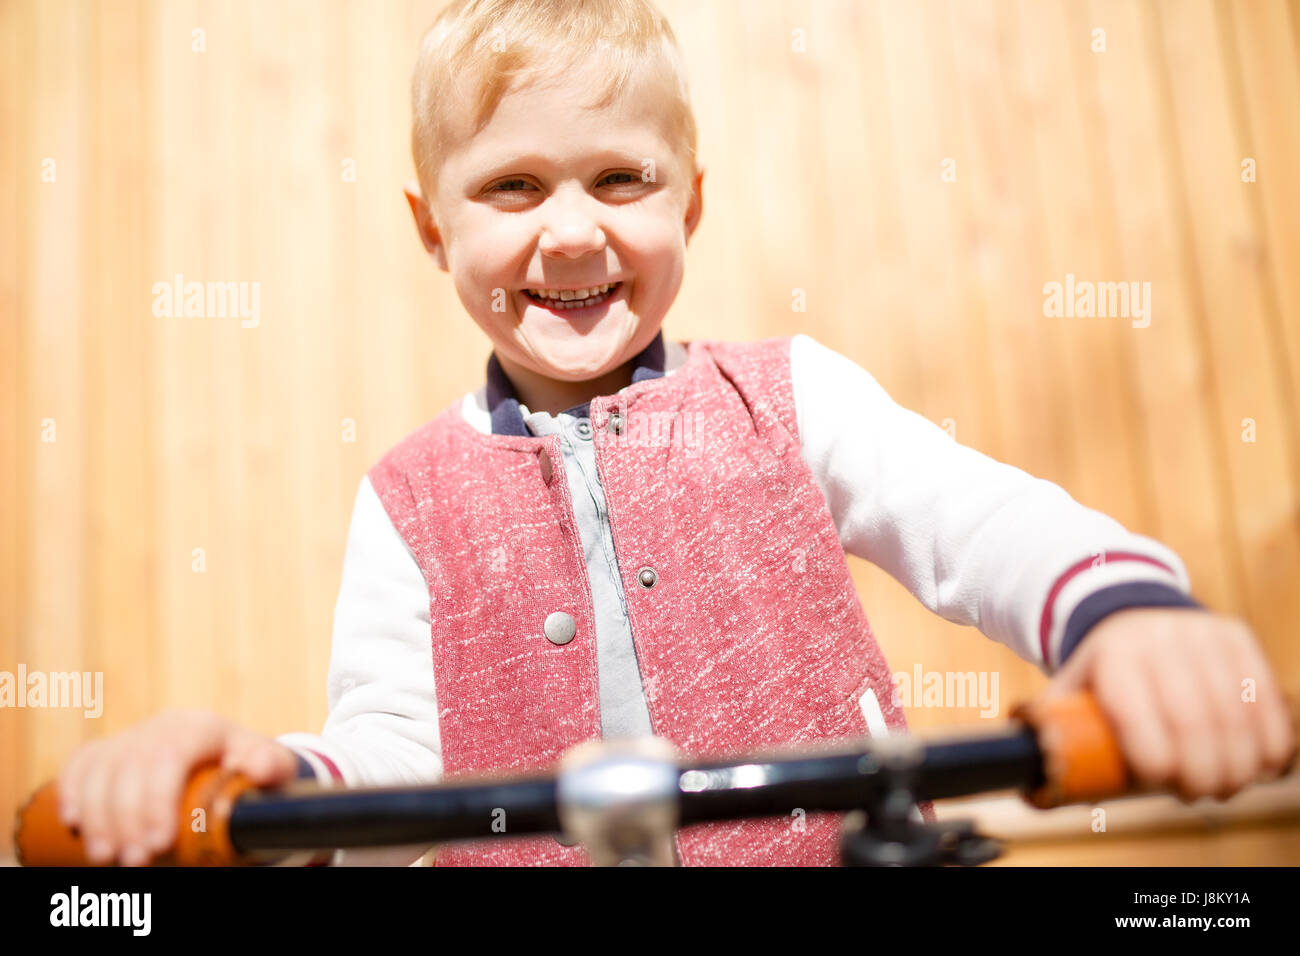 Photo of boy with bicycle - Stock Image